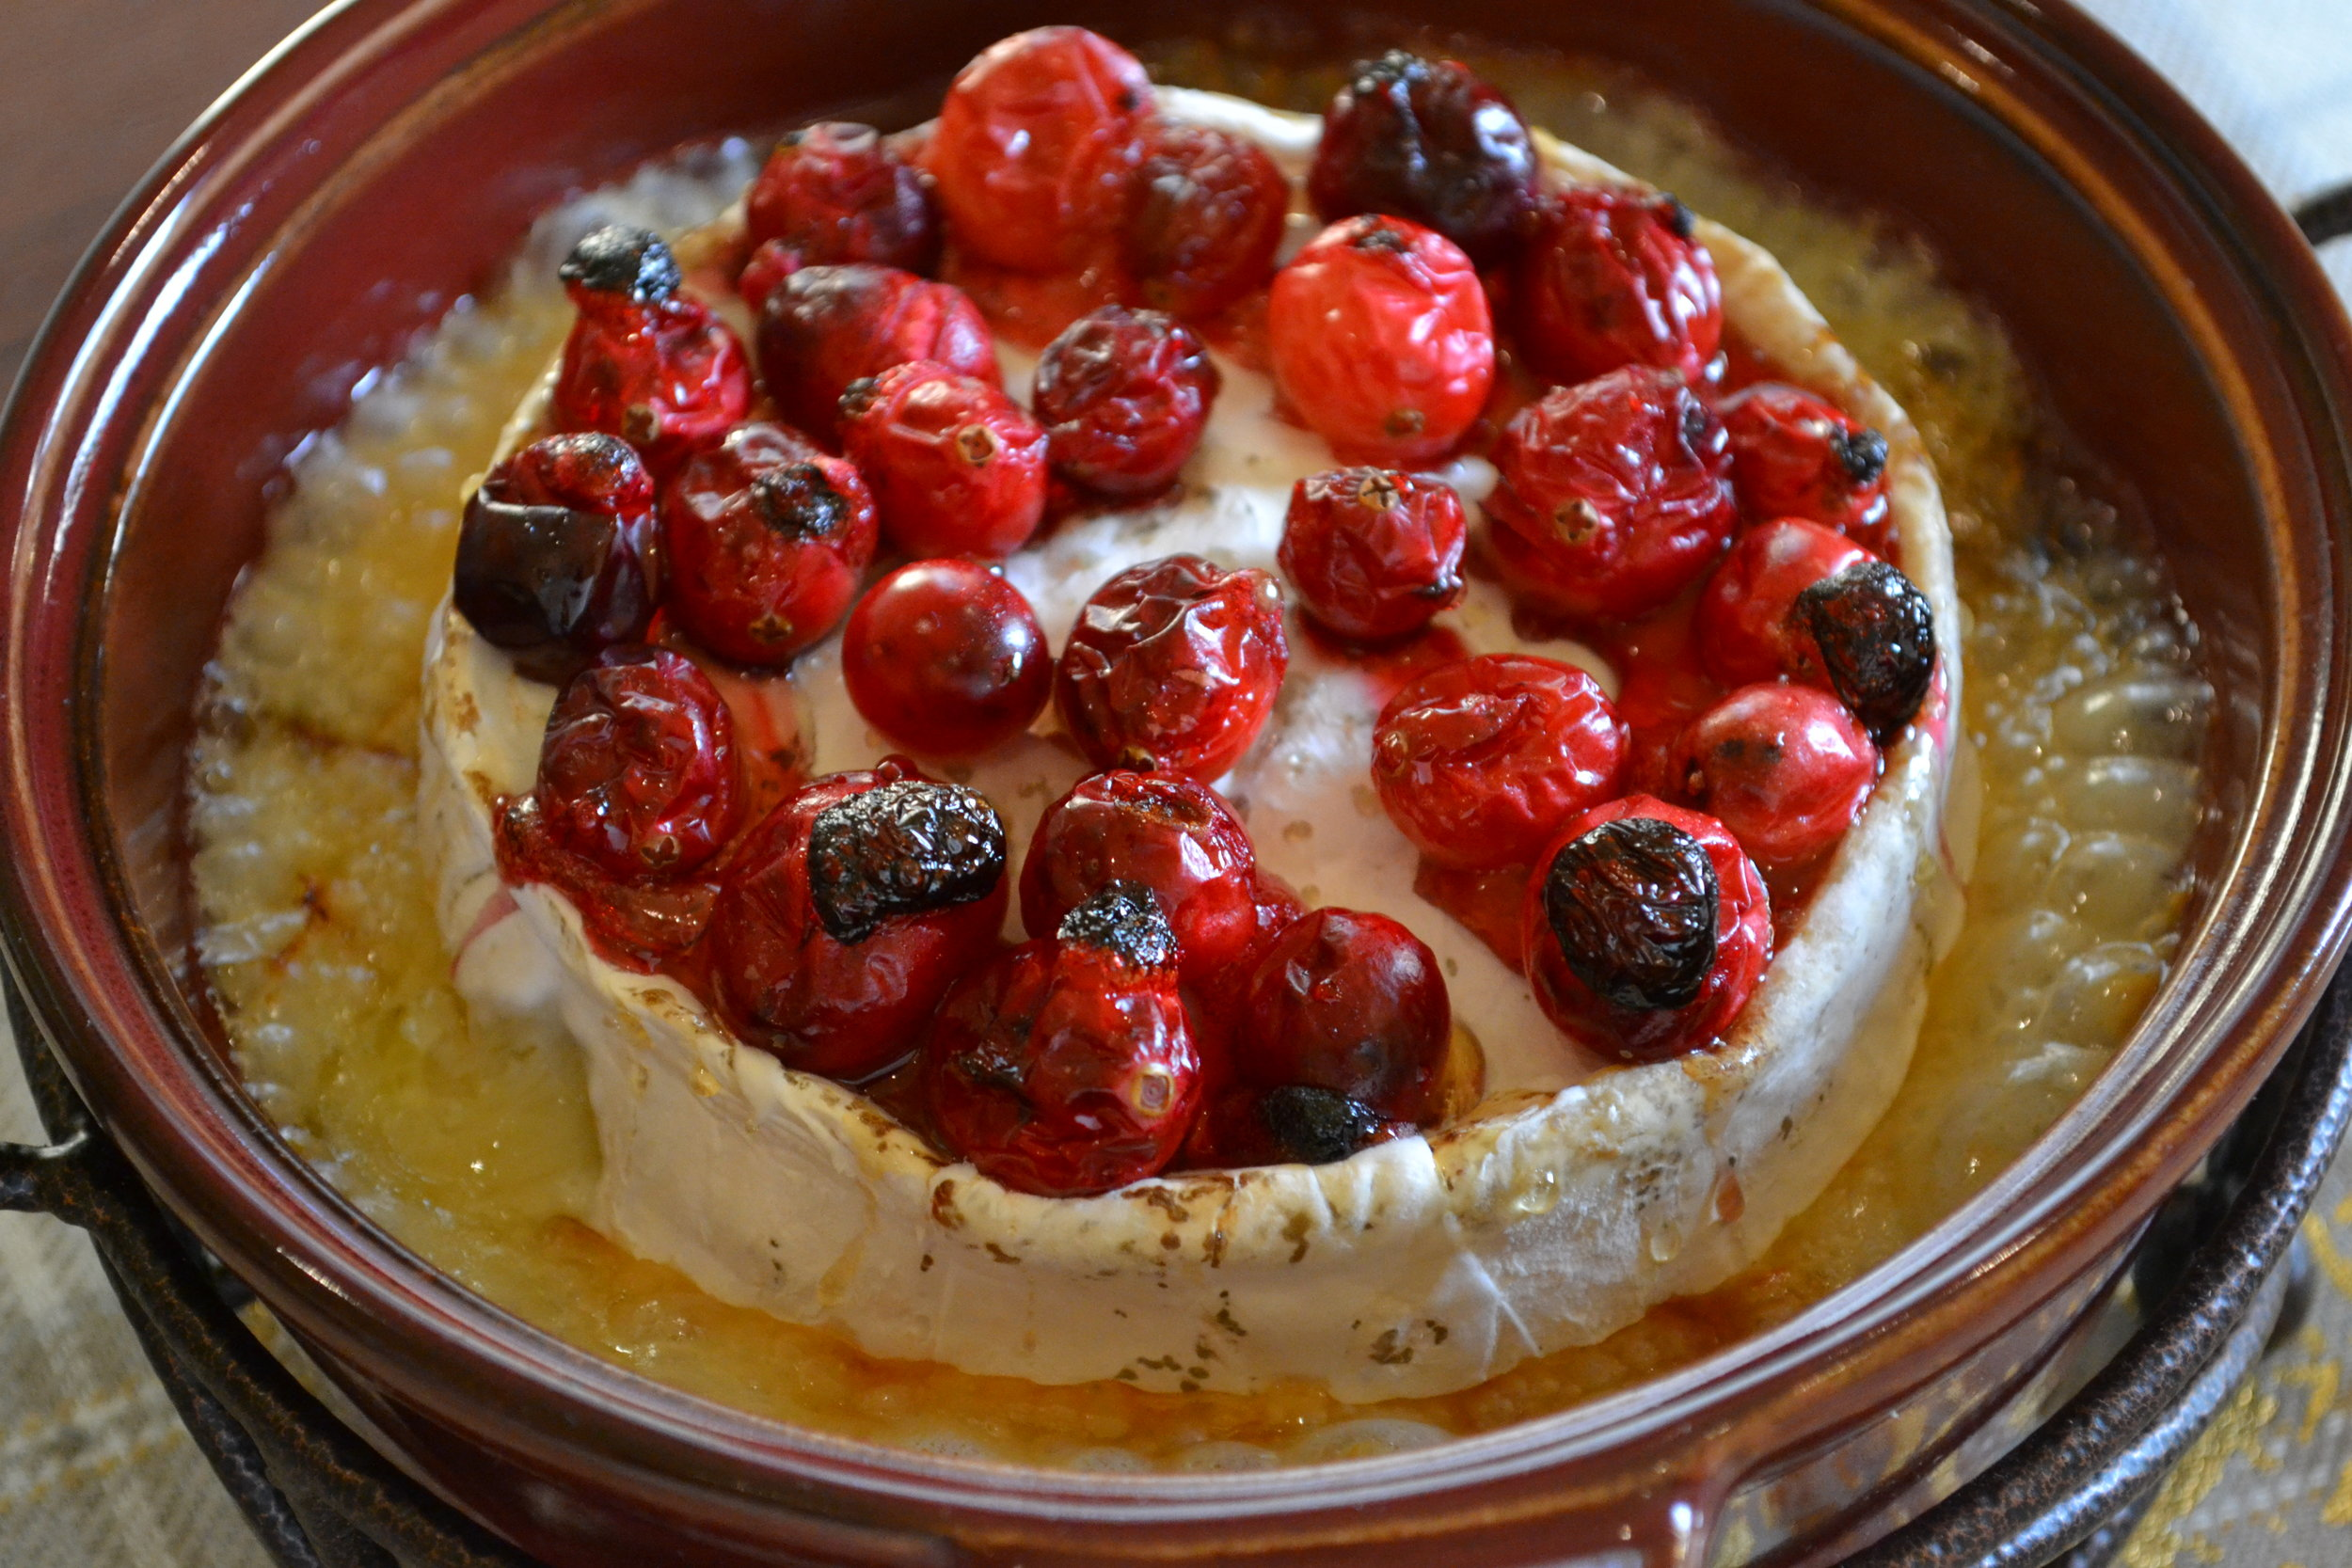 Cranberries and Honey over Blue Brie